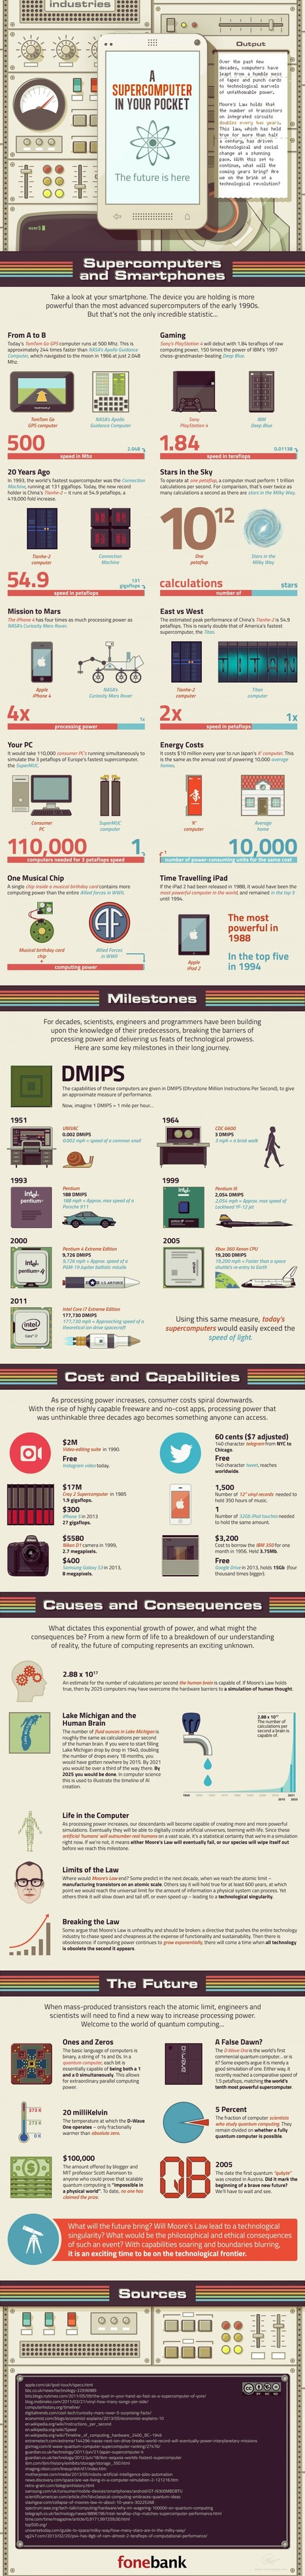 A Super Computer In Your Pocket - Infographic   Digital Technology and Life   Scoop.it